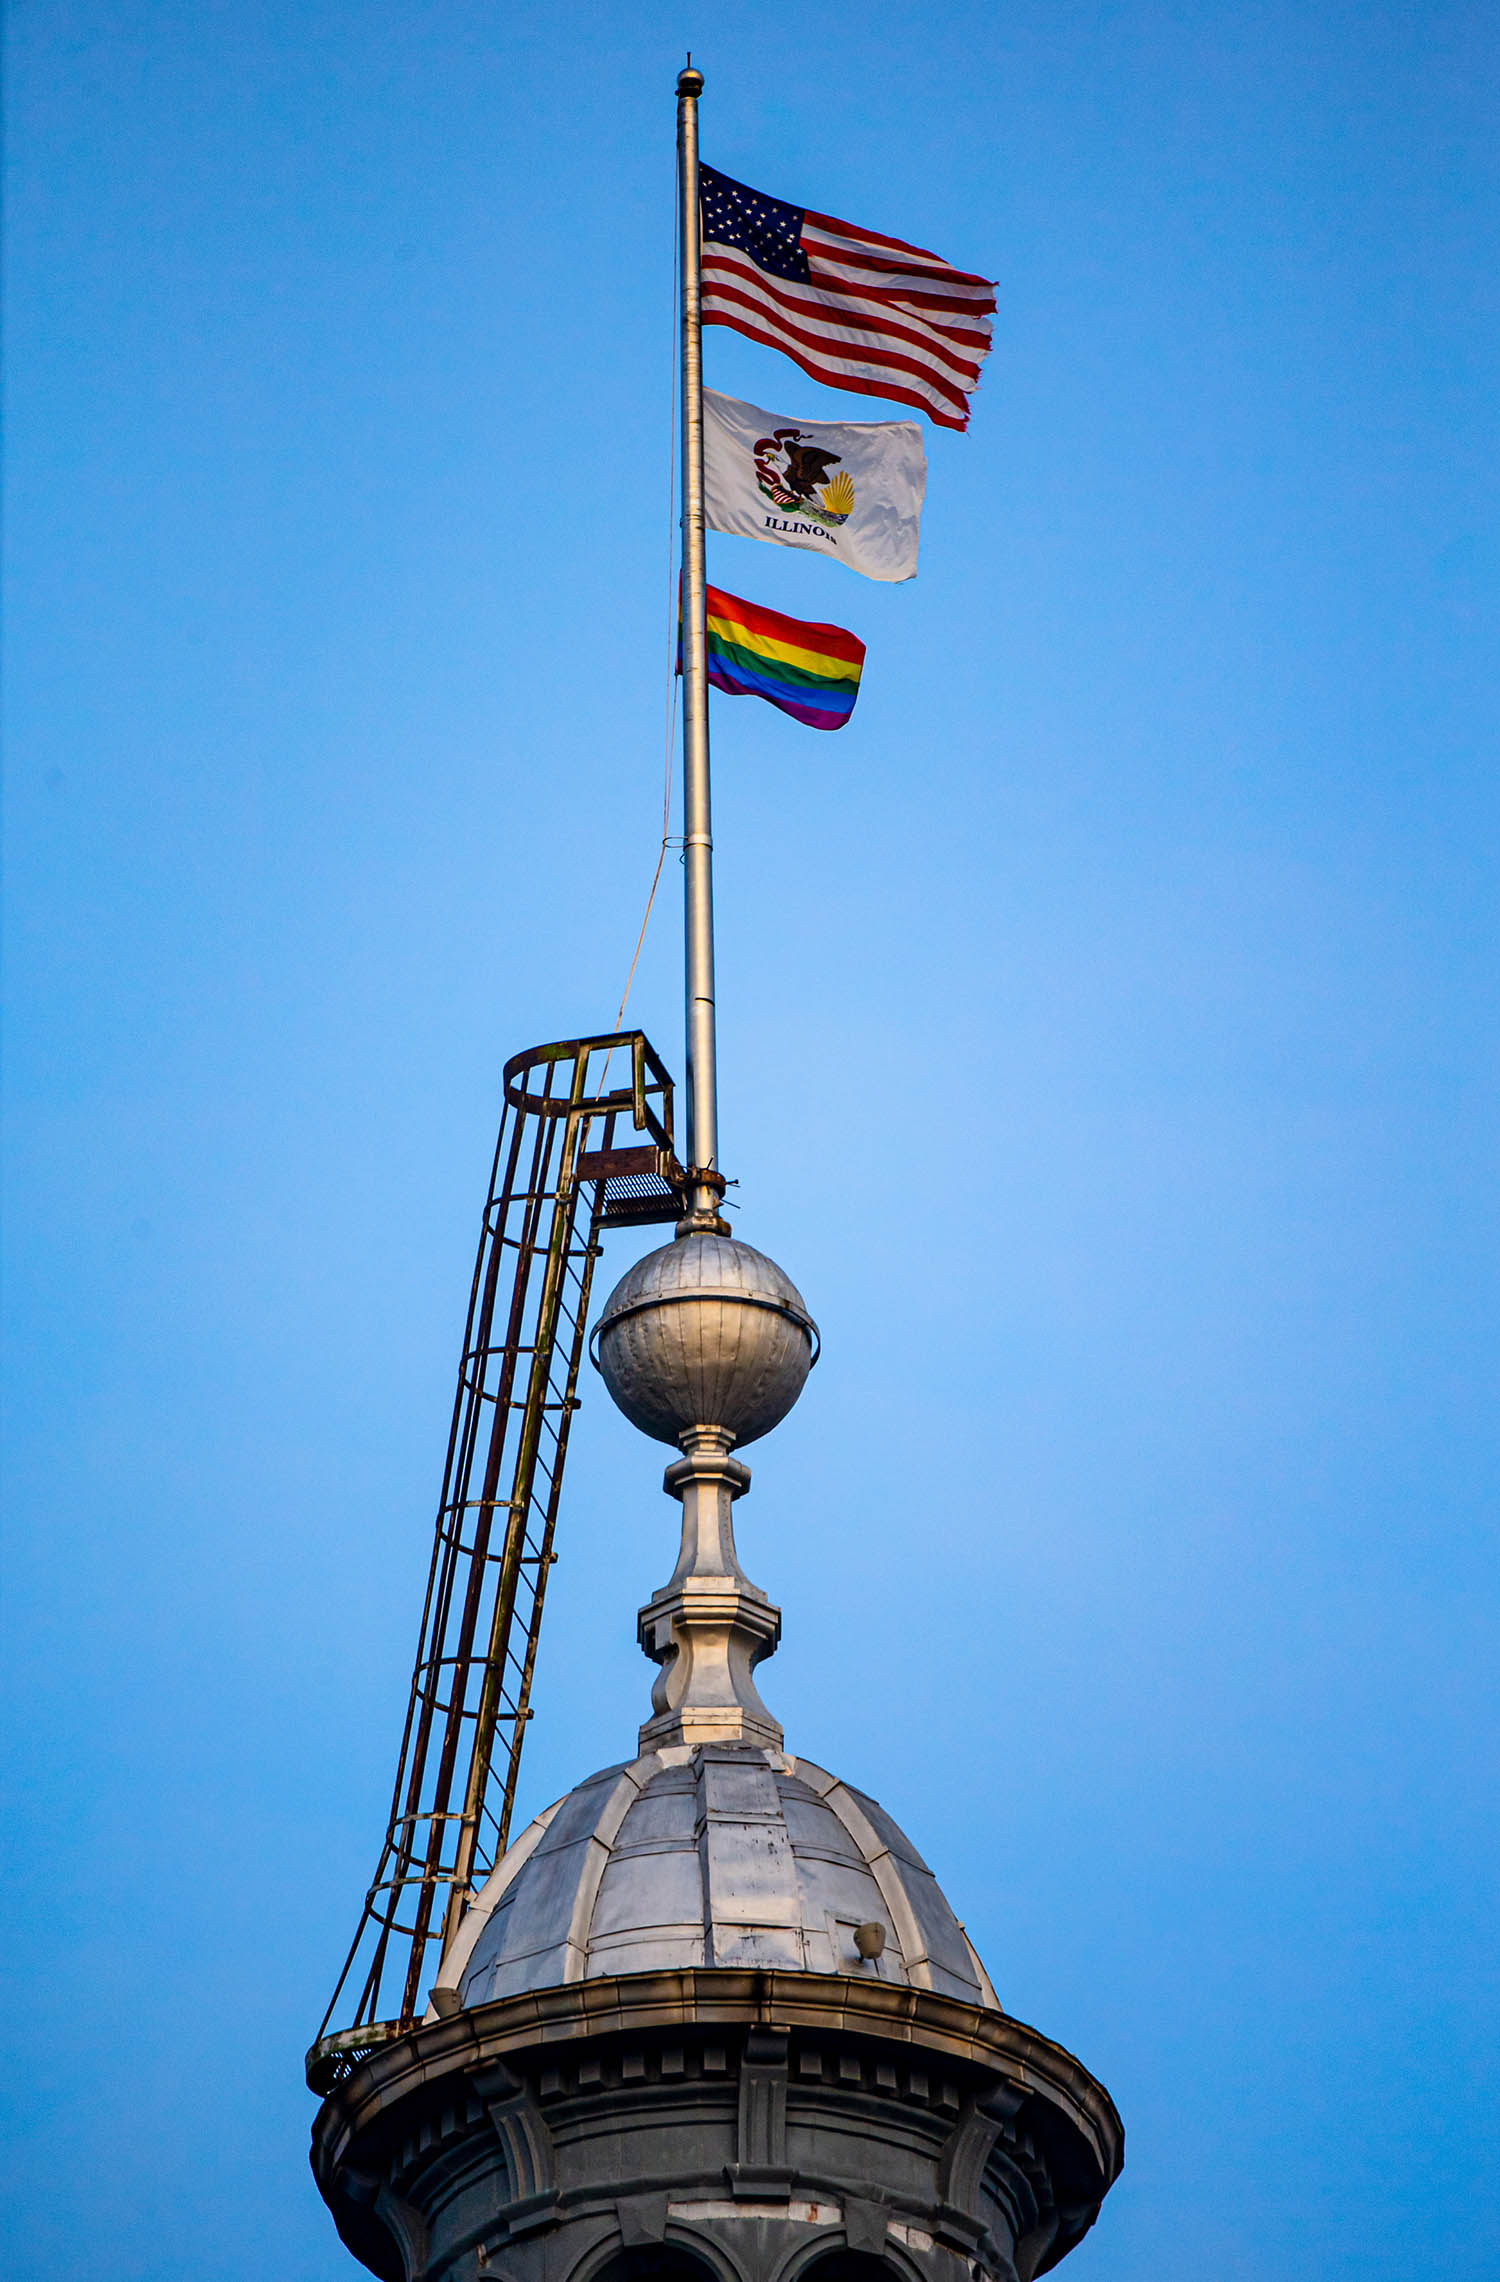 A rainbow pride flag flies along with the Illinois Flag and the American Flag atop the Illinois State Capitol to celebrate Pride Month at the request of Illinois Governor J.B. Pritzker, Monday, June 17, 2019, in Springfield, Ill. The rainbow pride flags were donated by Springfield´s Phoenix Center, the LGBTQ Community Center for Central Illinois. [Justin L. Fowler/The State Journal-Register]